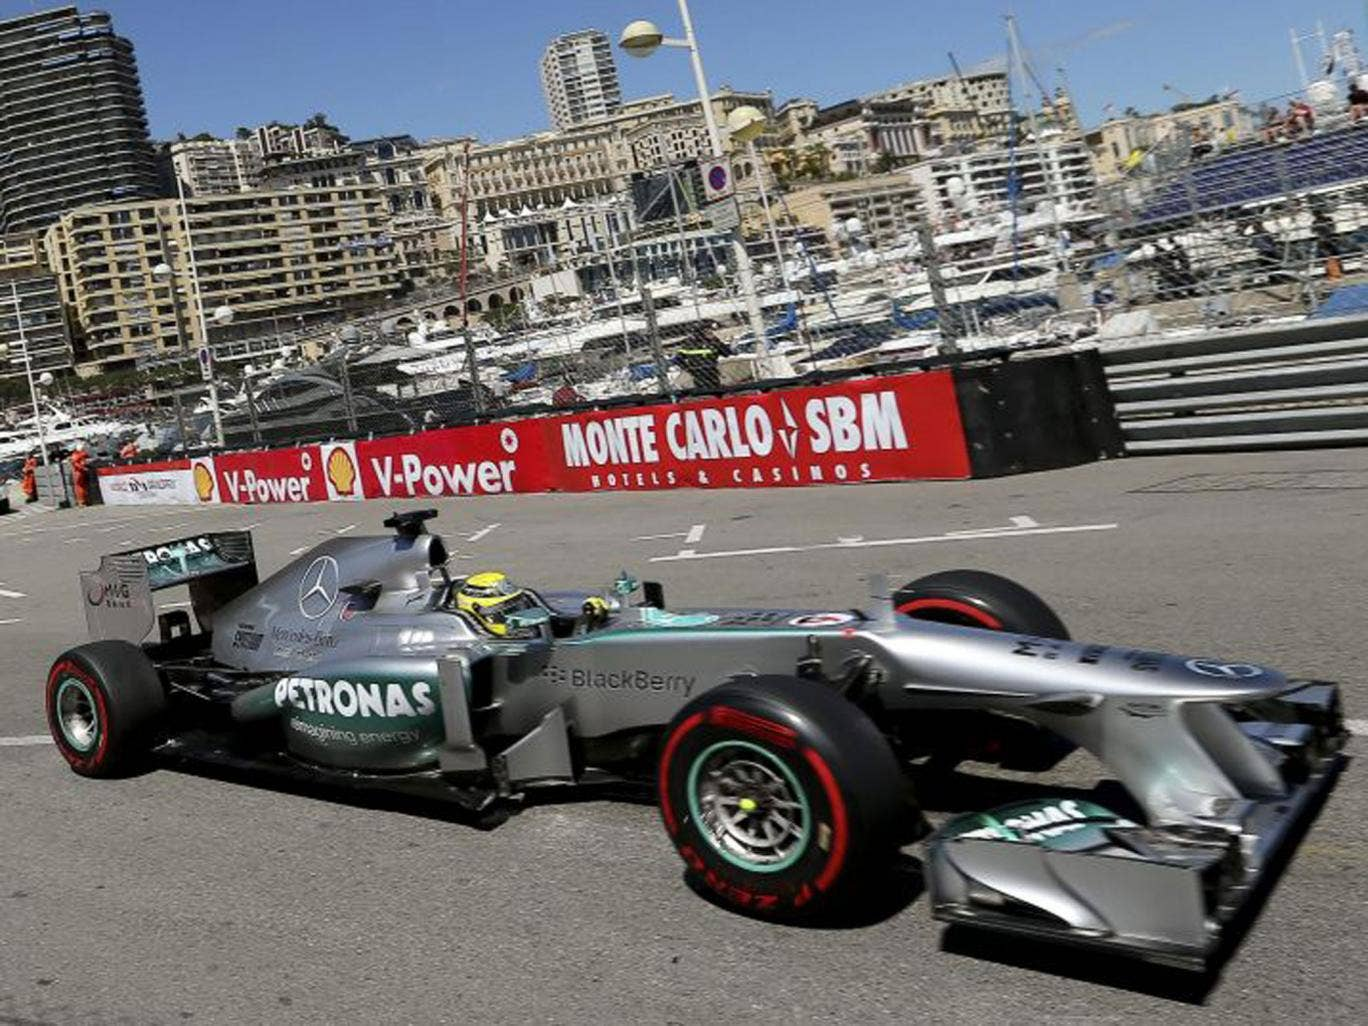 Nico Rosberg was once again faster than Lewis Hamilton in practice